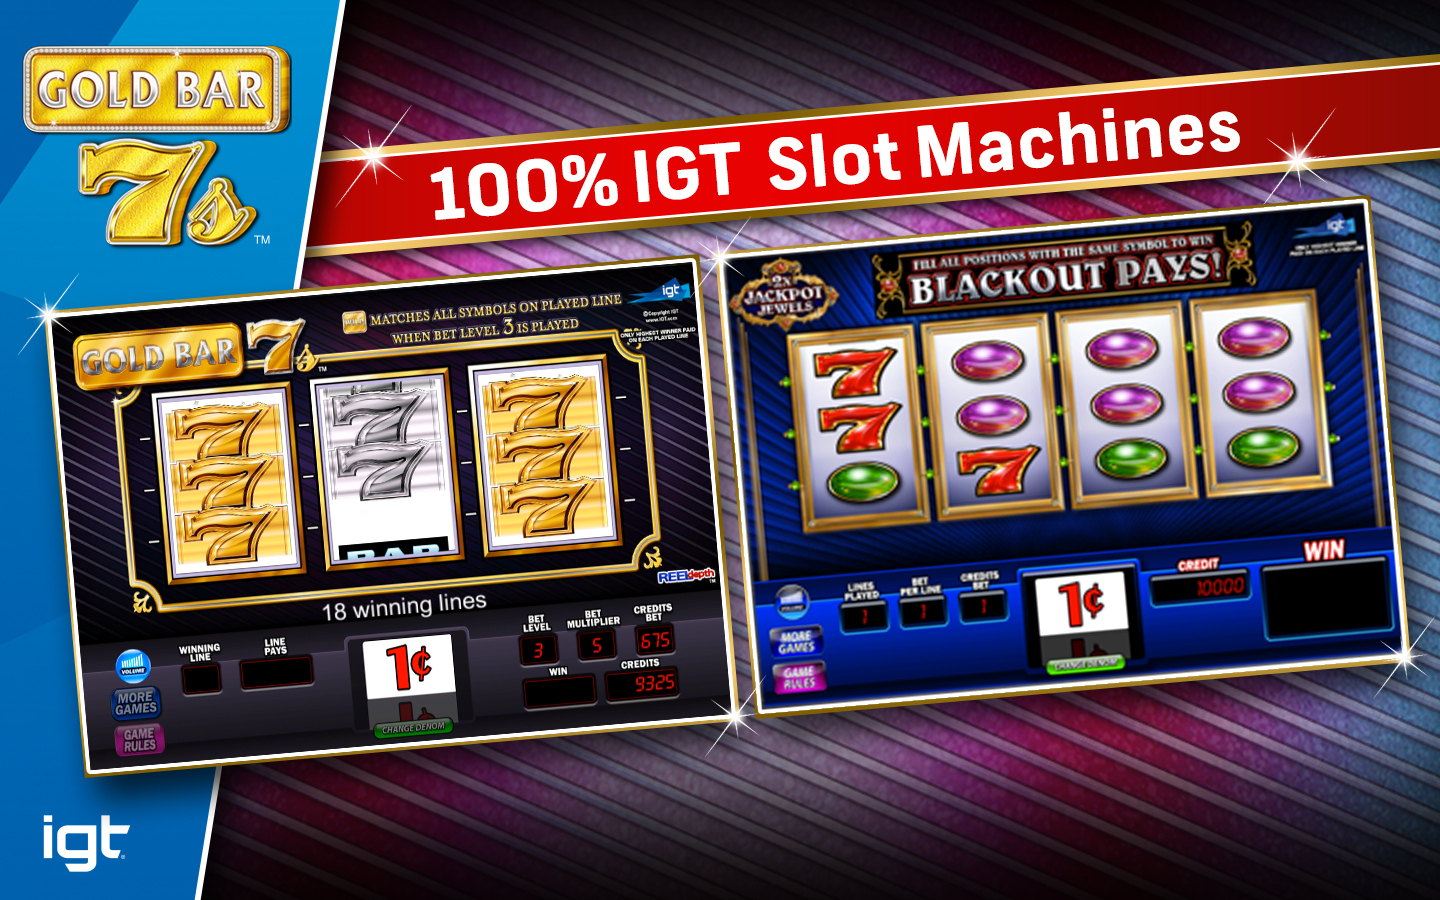 Bars & 7s Slots - Try this Free Demo Version